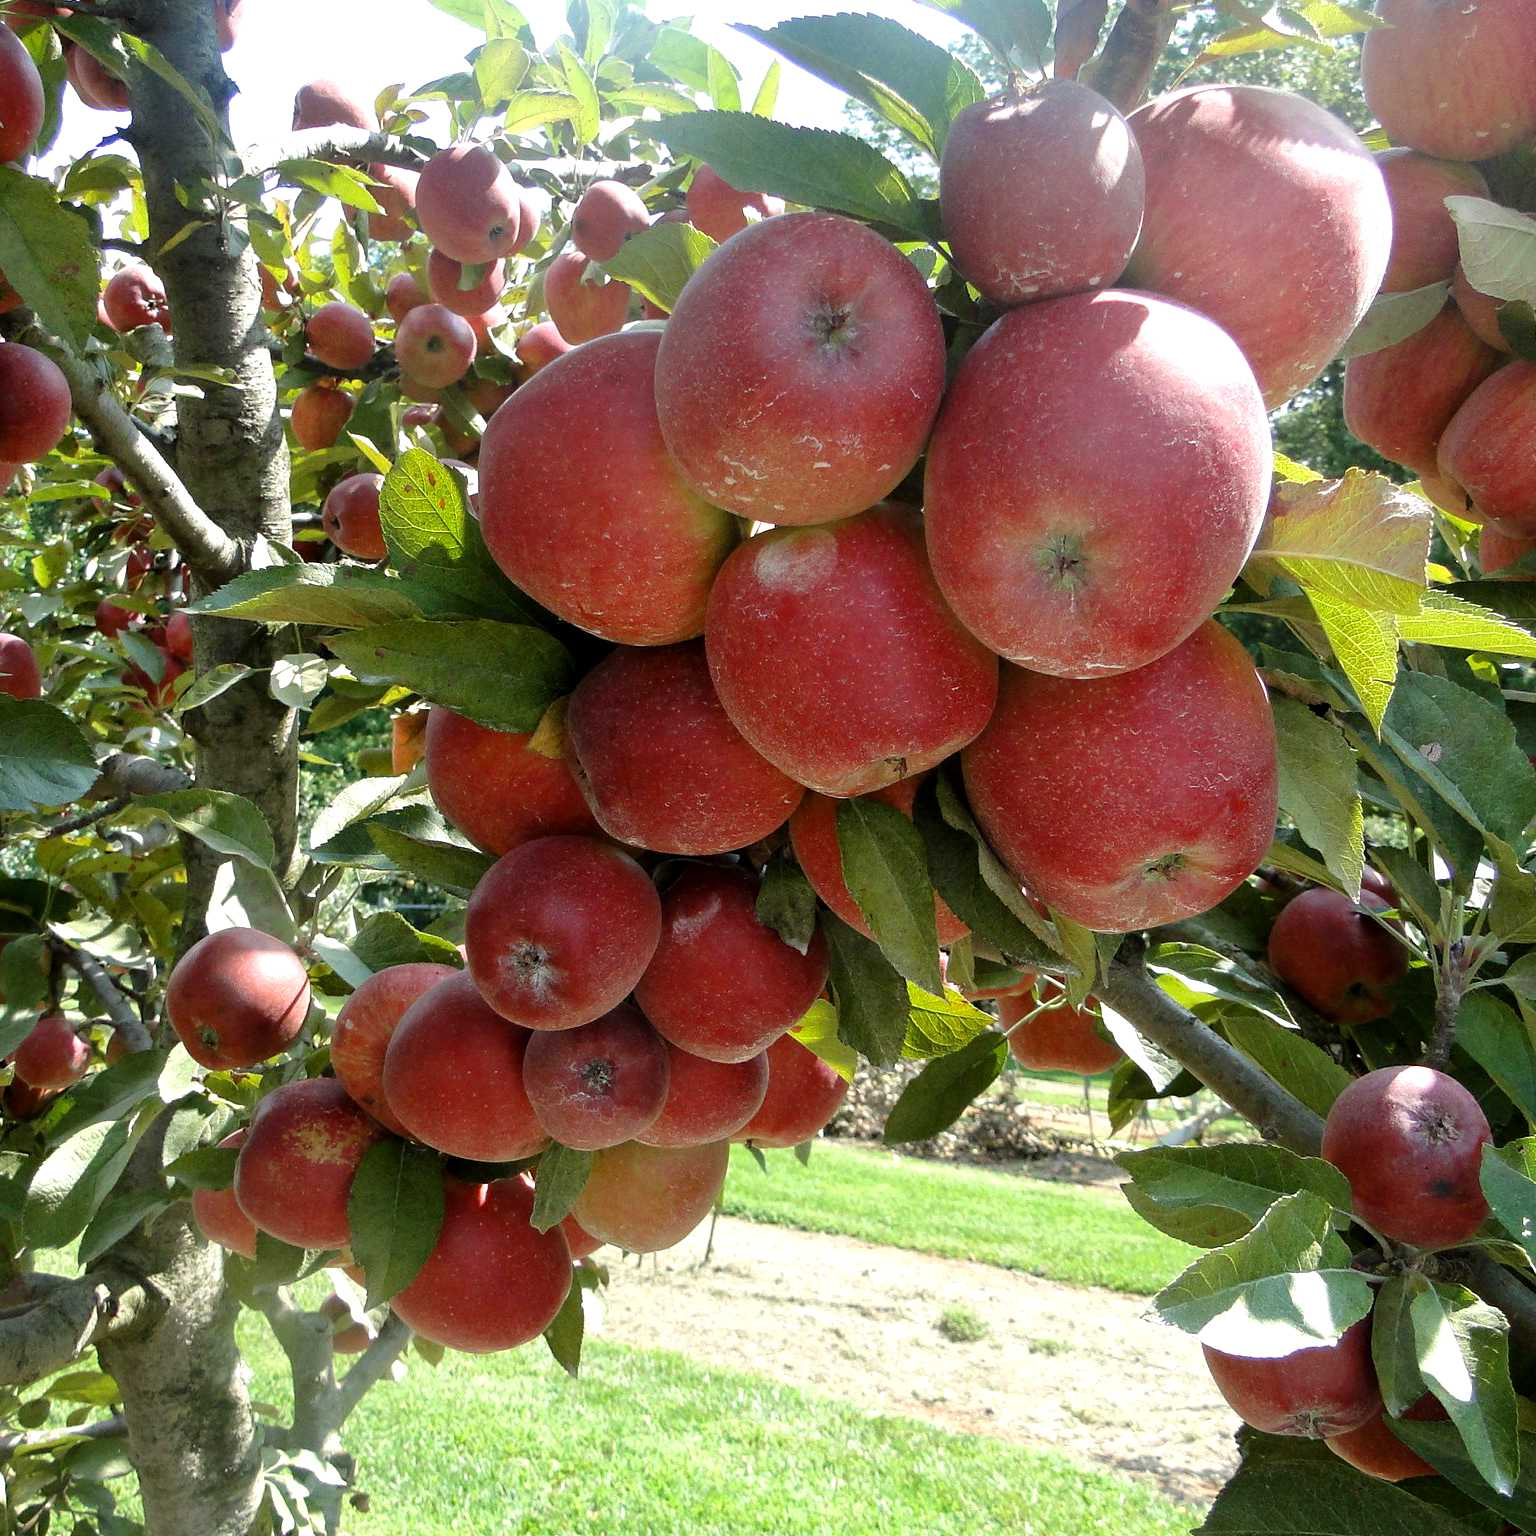 an apple tree stem overloaded with many red ripe apples